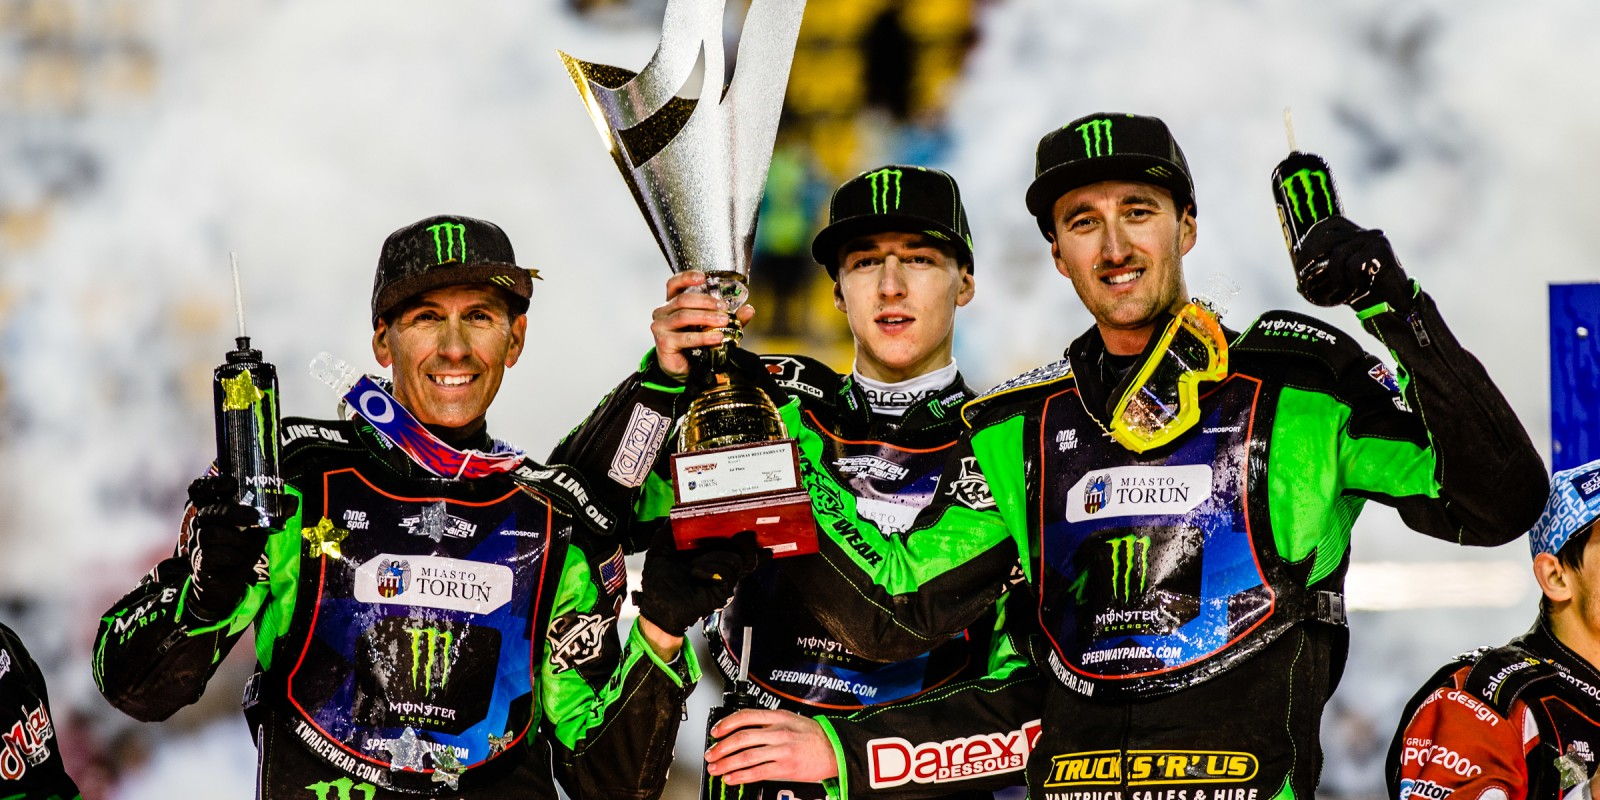 Images of Team Monster Energy at Speedway Best Pairs round one